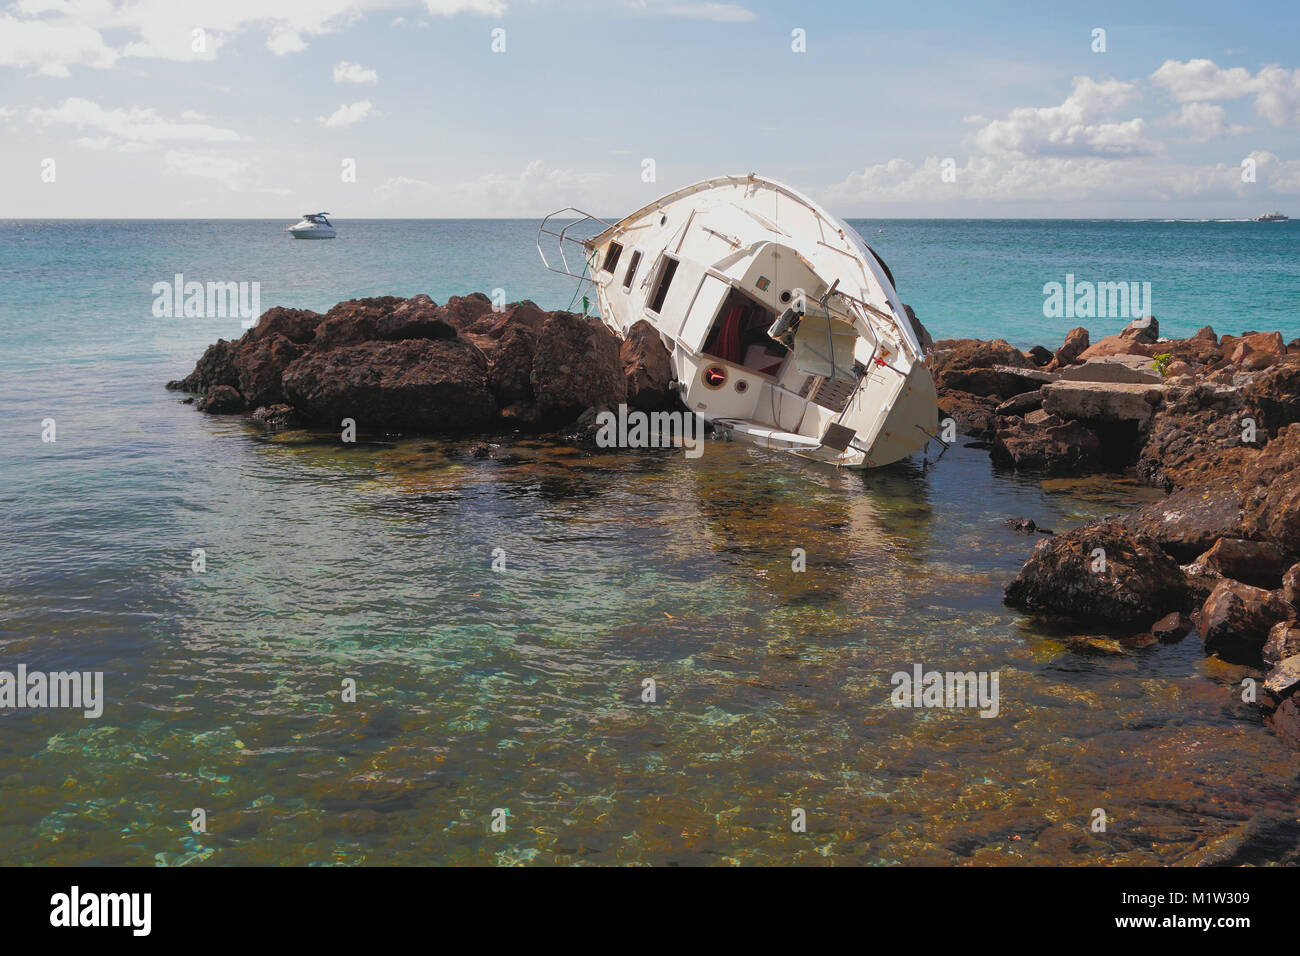 Yacht which has crashed. Pointe-du-Bout, Martinique - Stock Image